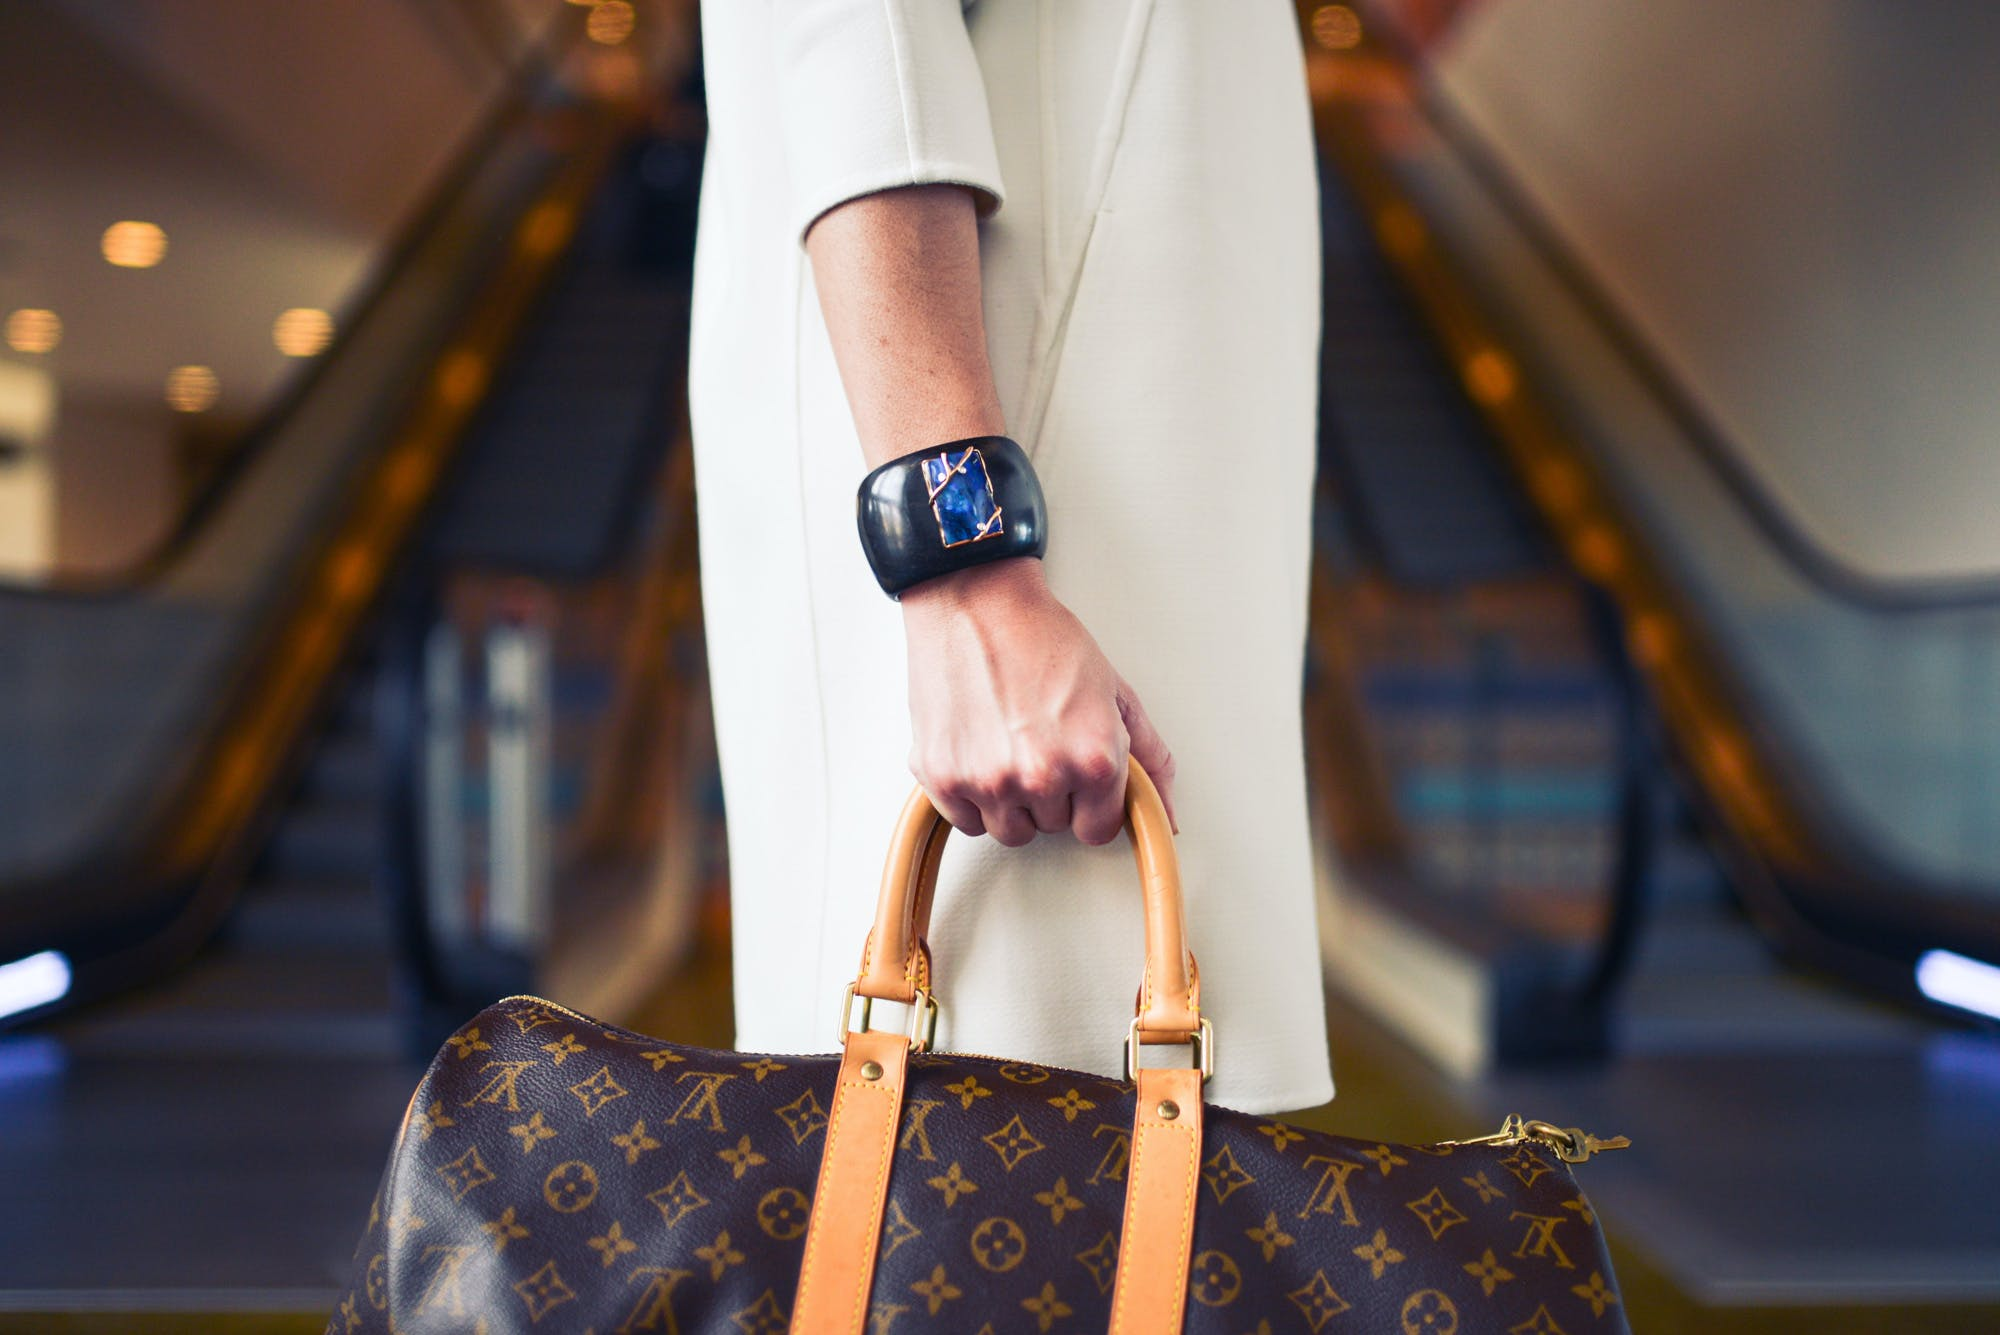 Person Carrying Monogrammed Louis Vuitton Handba